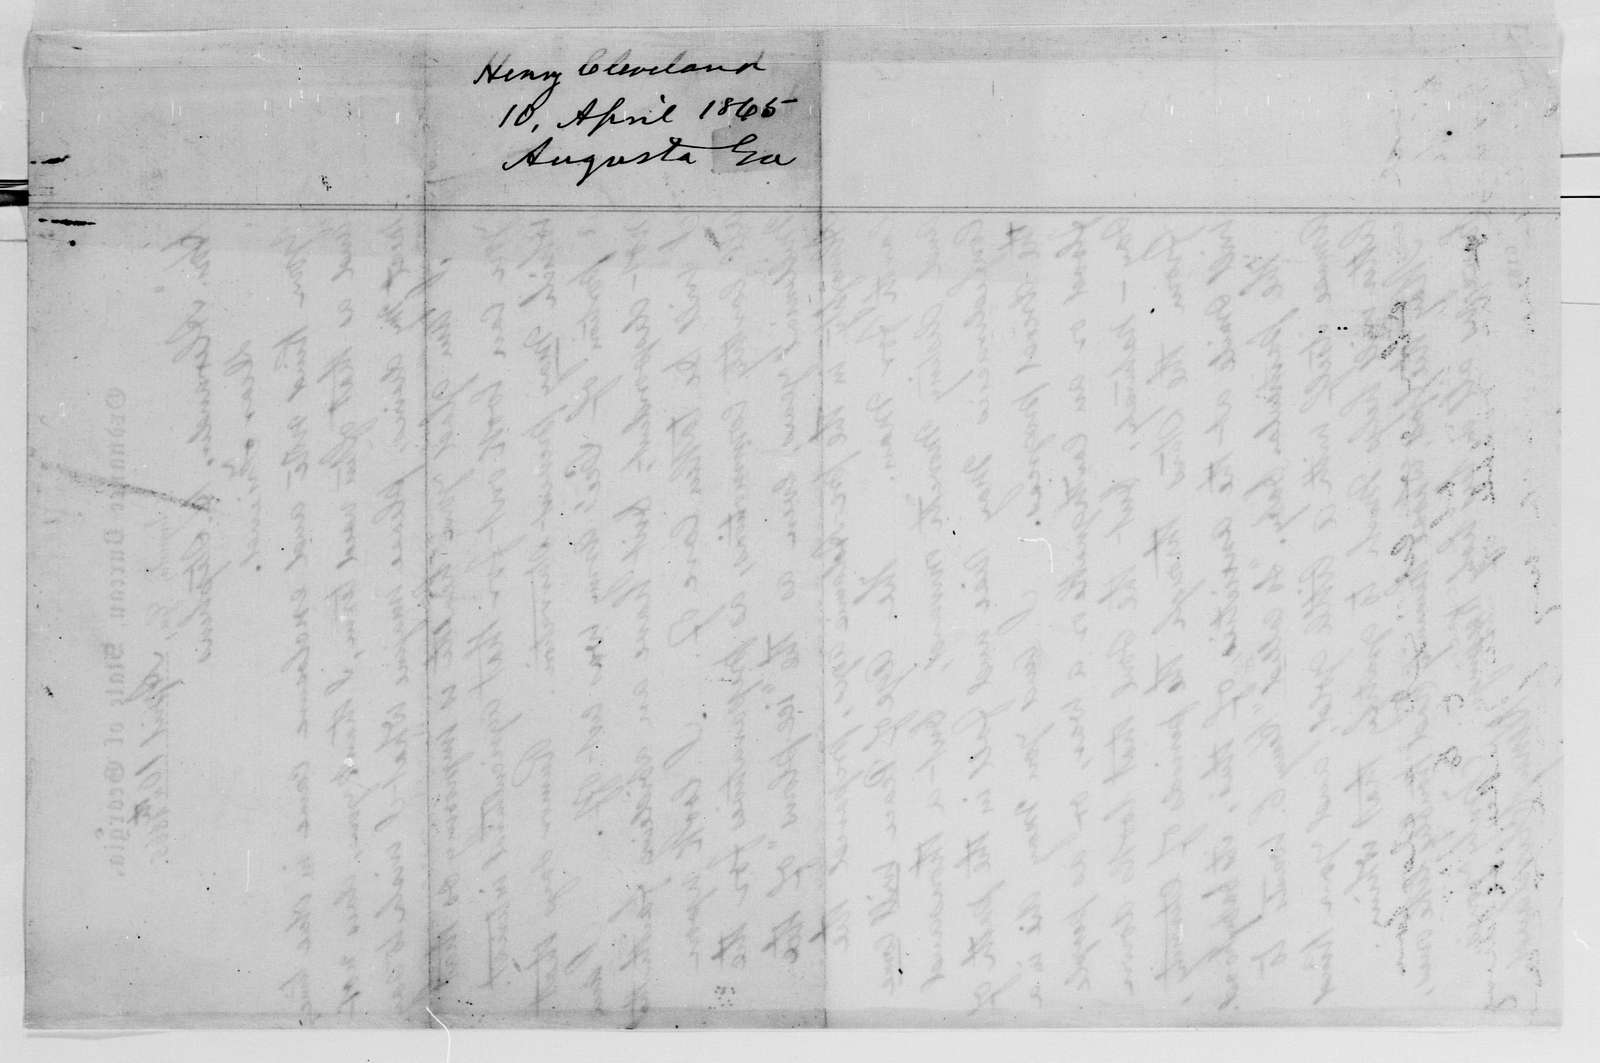 Alexander Hamilton Stephens Papers: General Correspondence, 1784-1886; 1864, Aug. 22-1865, May 25